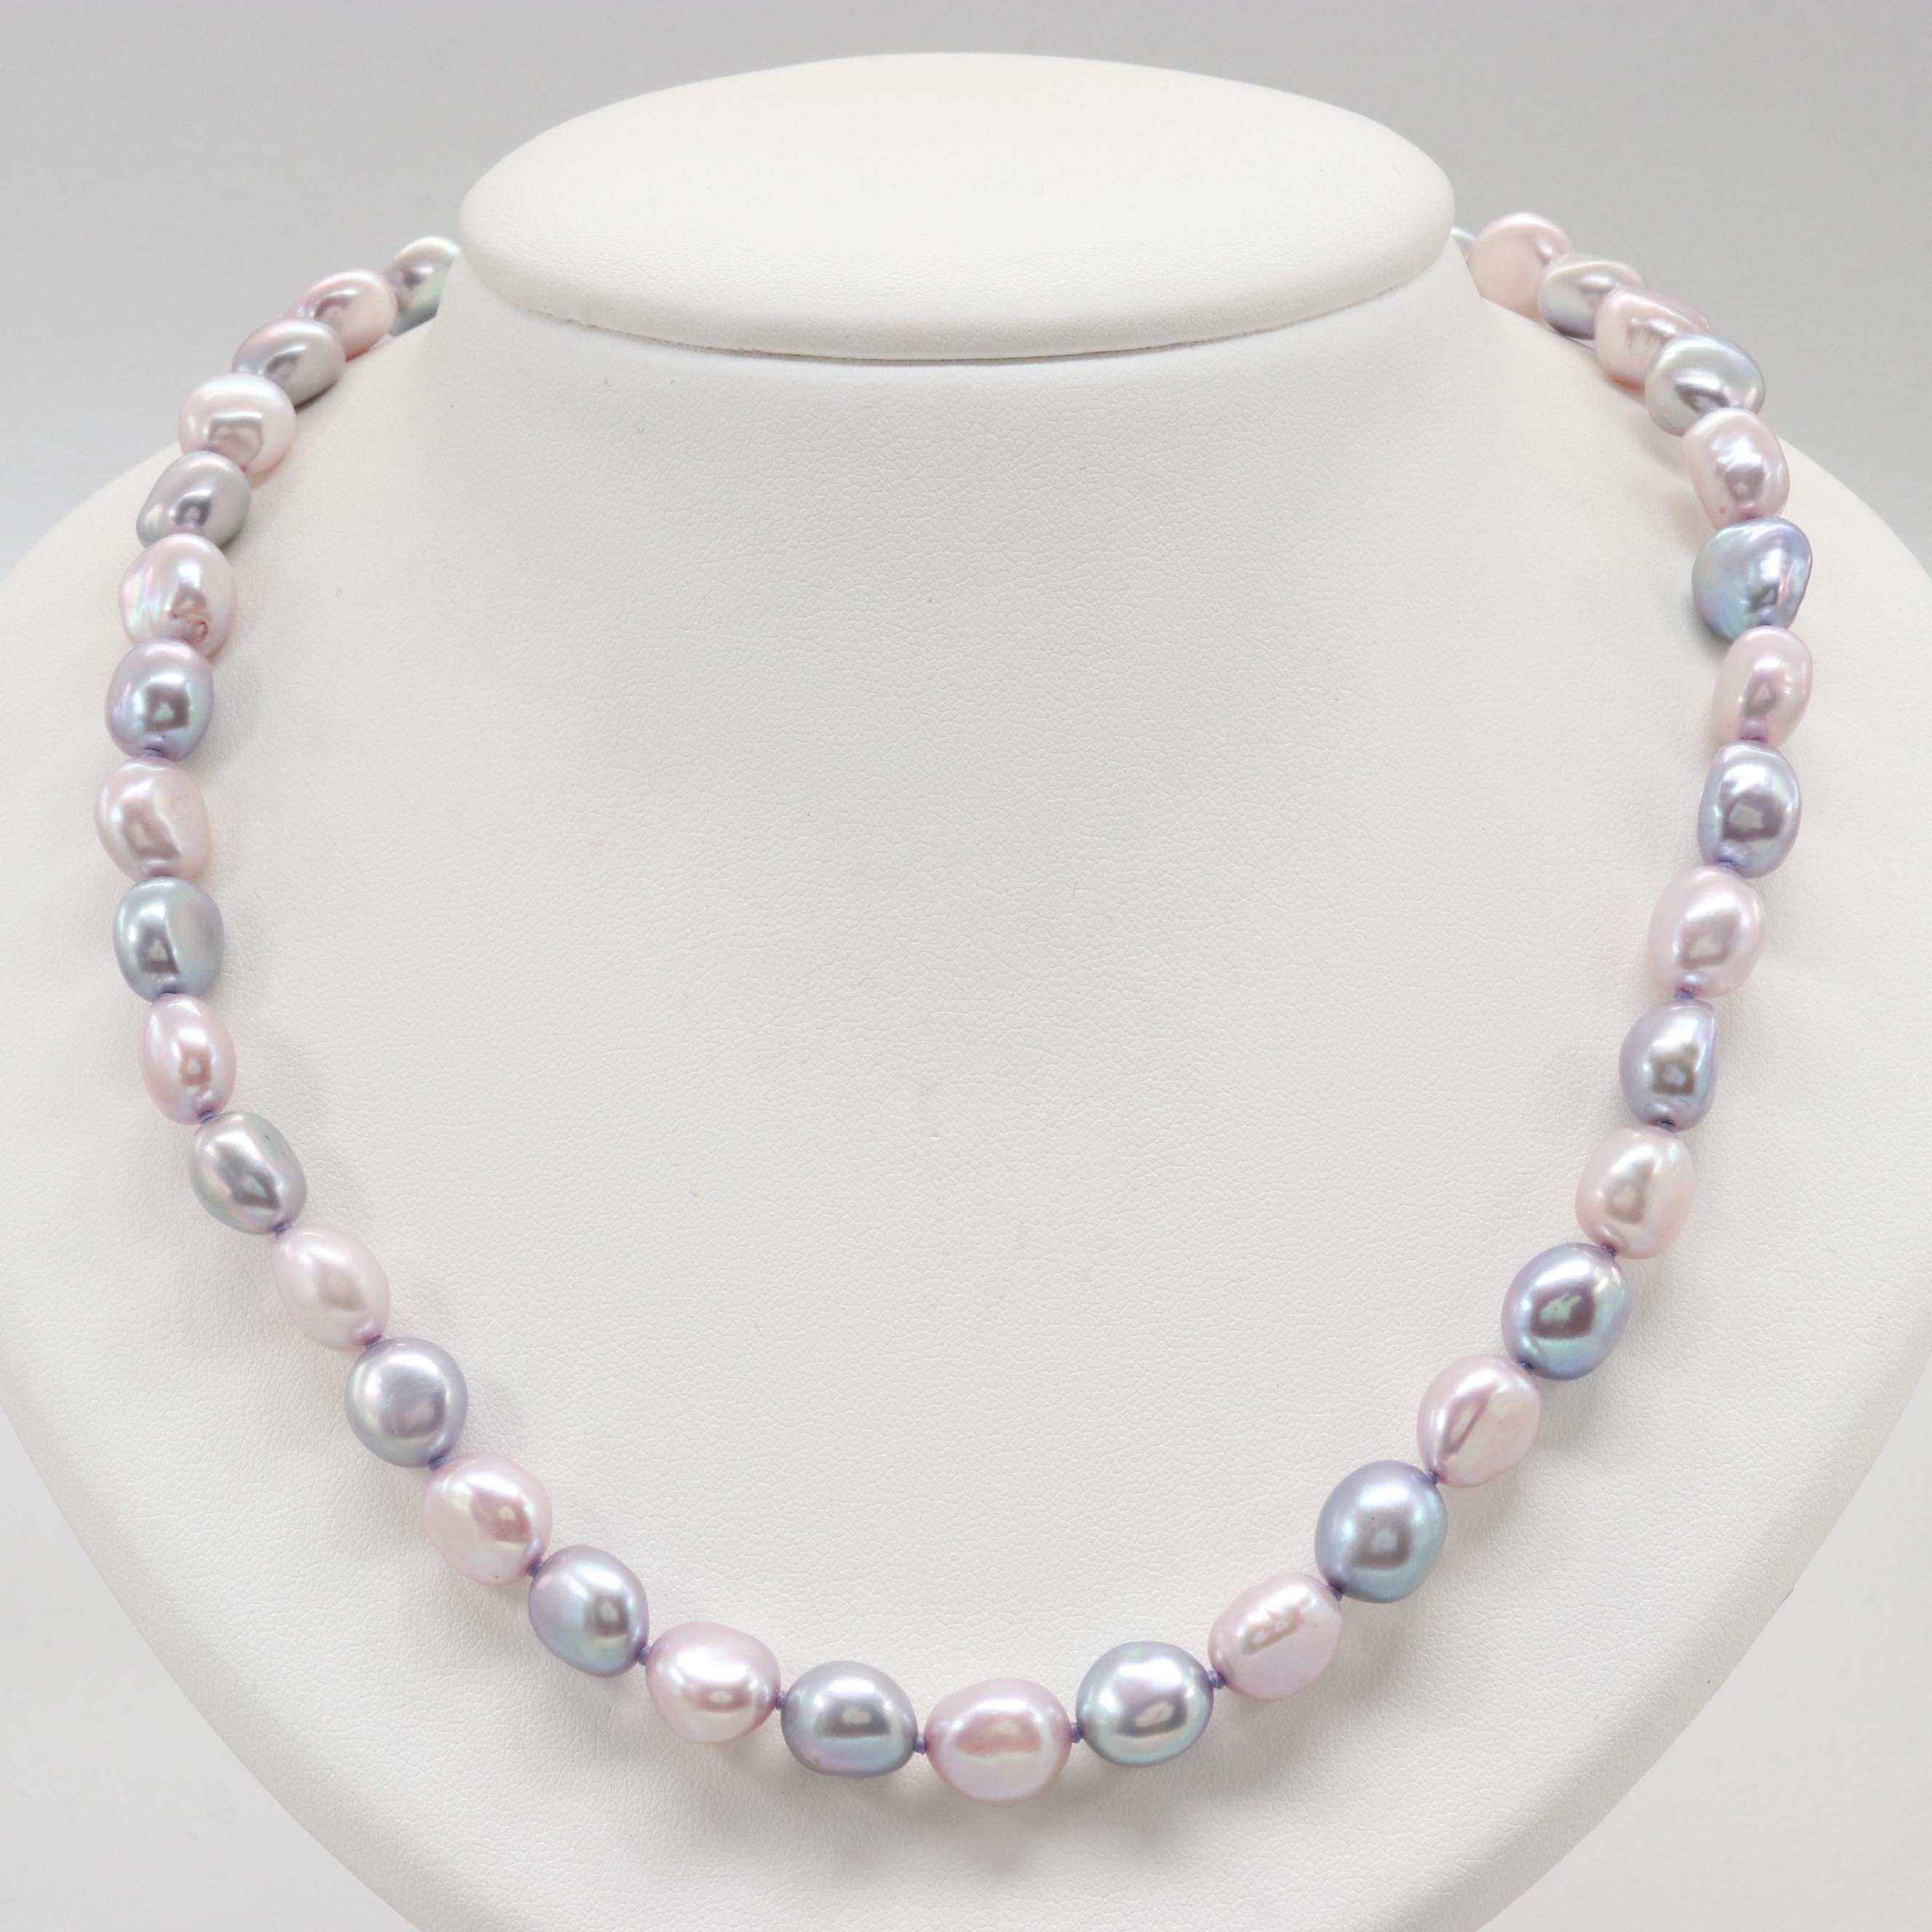 Sterling and Silver Tone Cultured Pearl Necklace